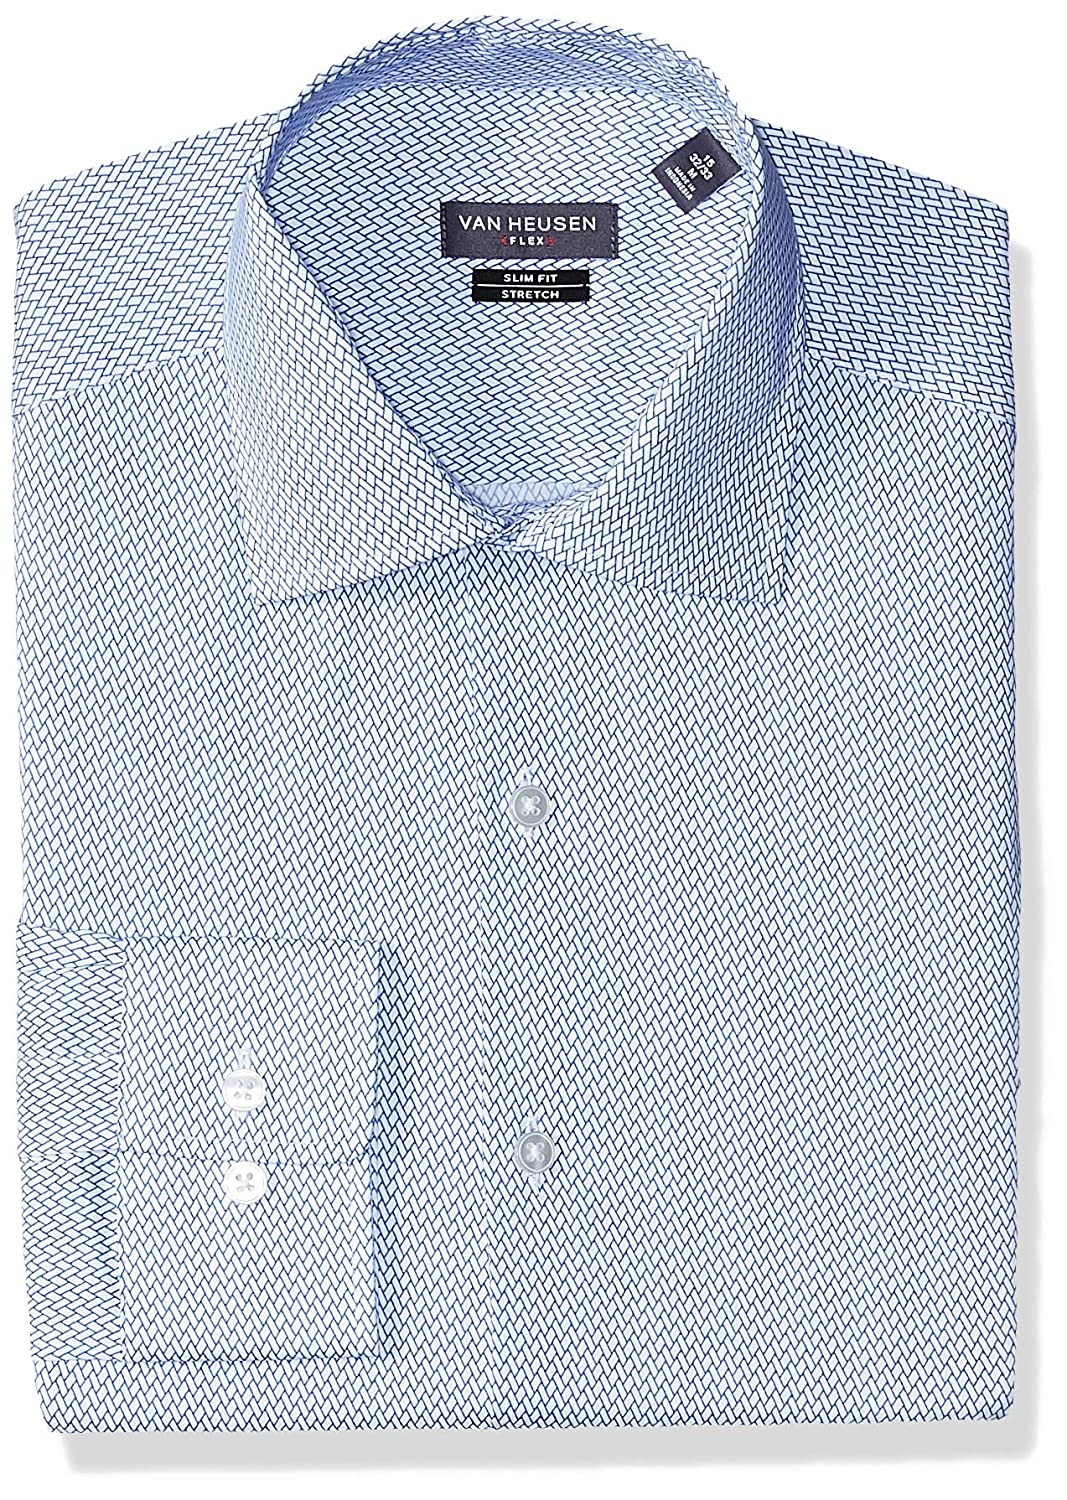 Van Heusen Mens Dress Shirt Flex Collar Slim Fit Print At Amazon